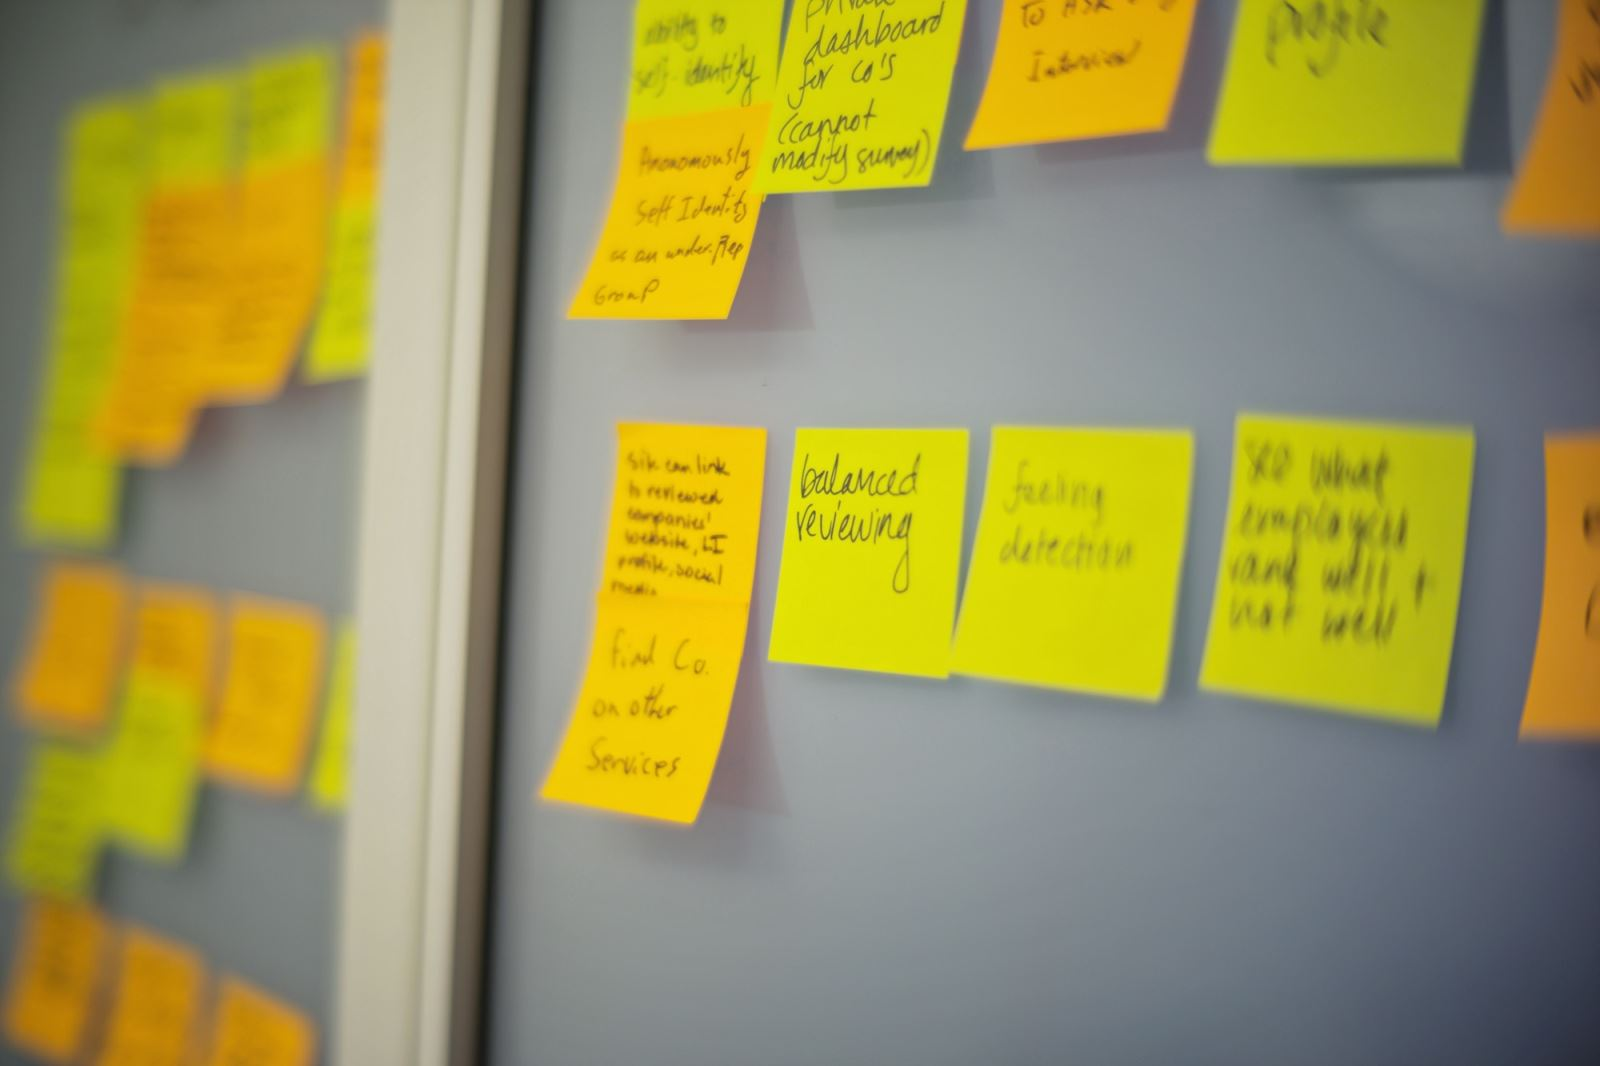 Many authors use post it notes to plot their story outlines